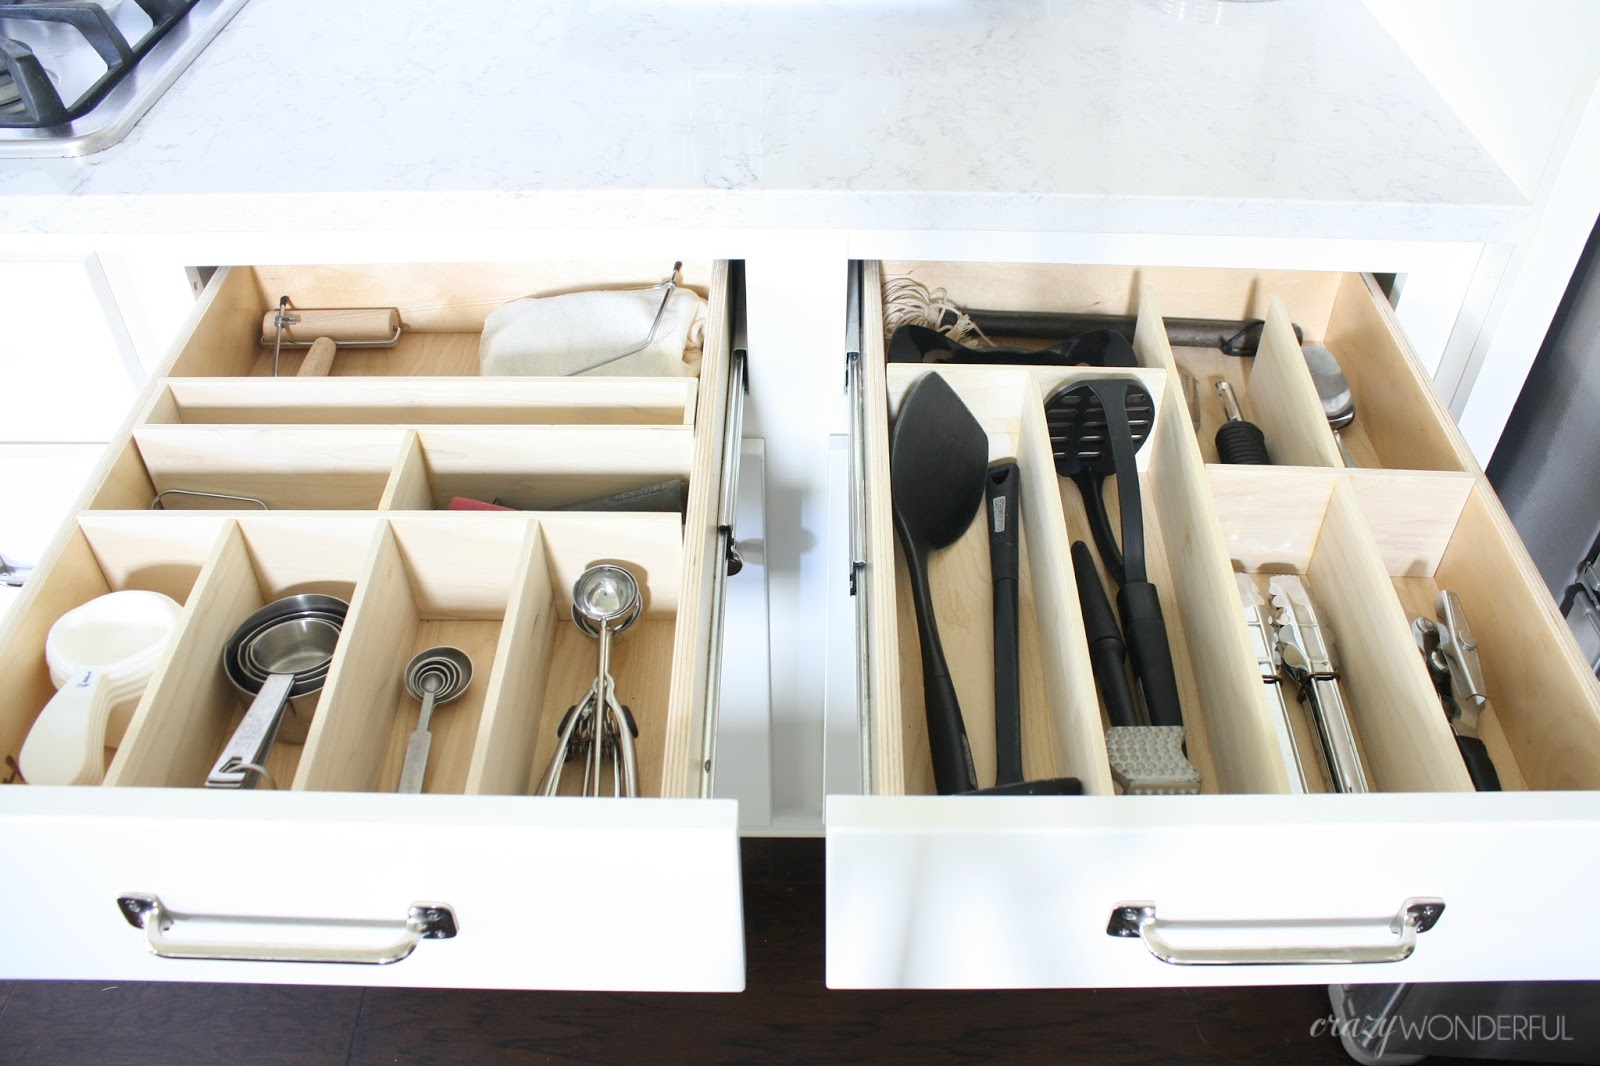 DIY custom kitchen drawer organizers - Crazy Wonderful